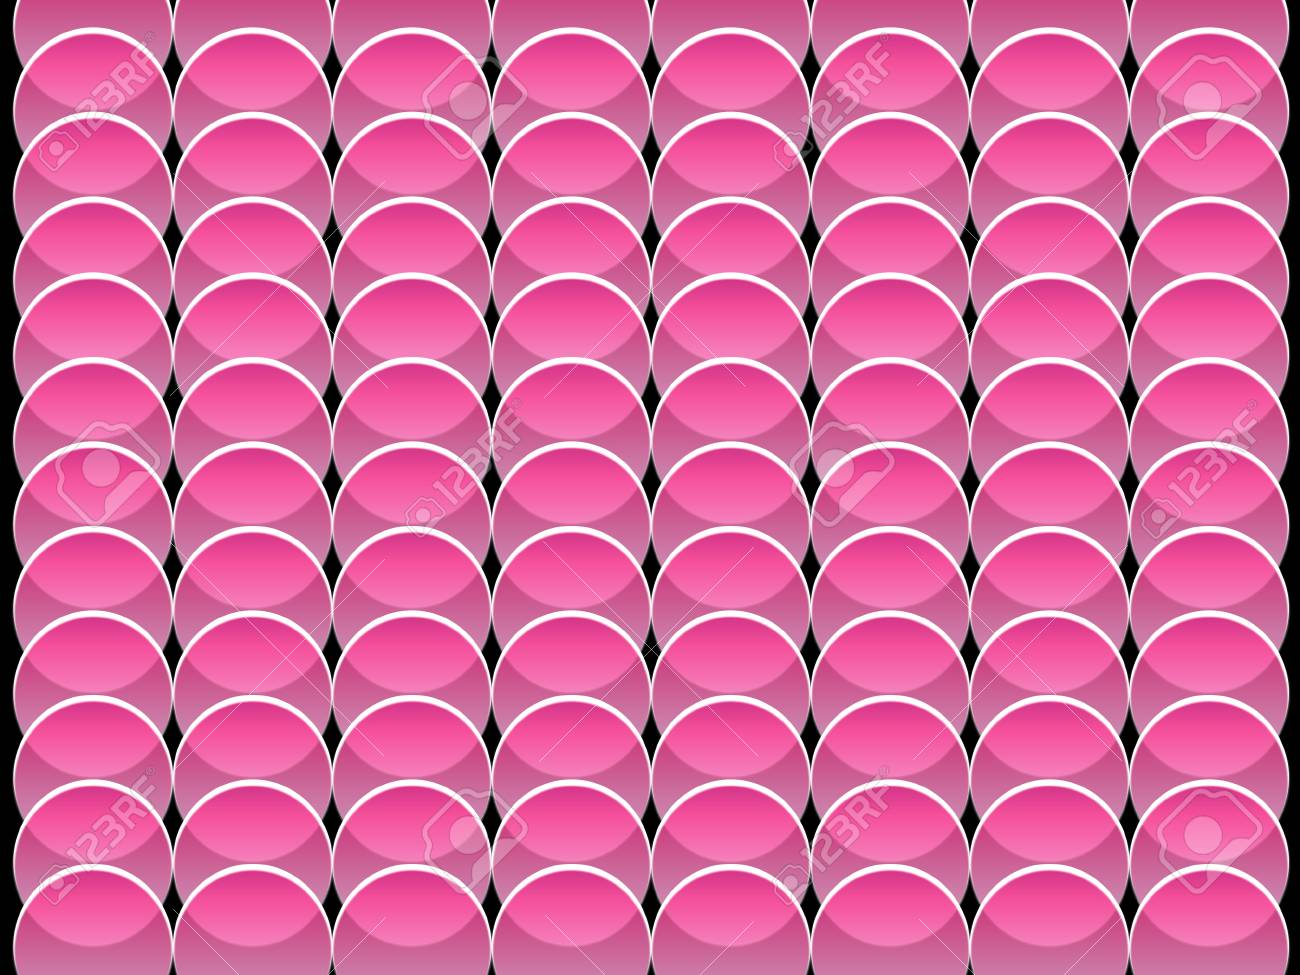 seamless abstract pink graphic circle shapes Stock Photo - 9108293